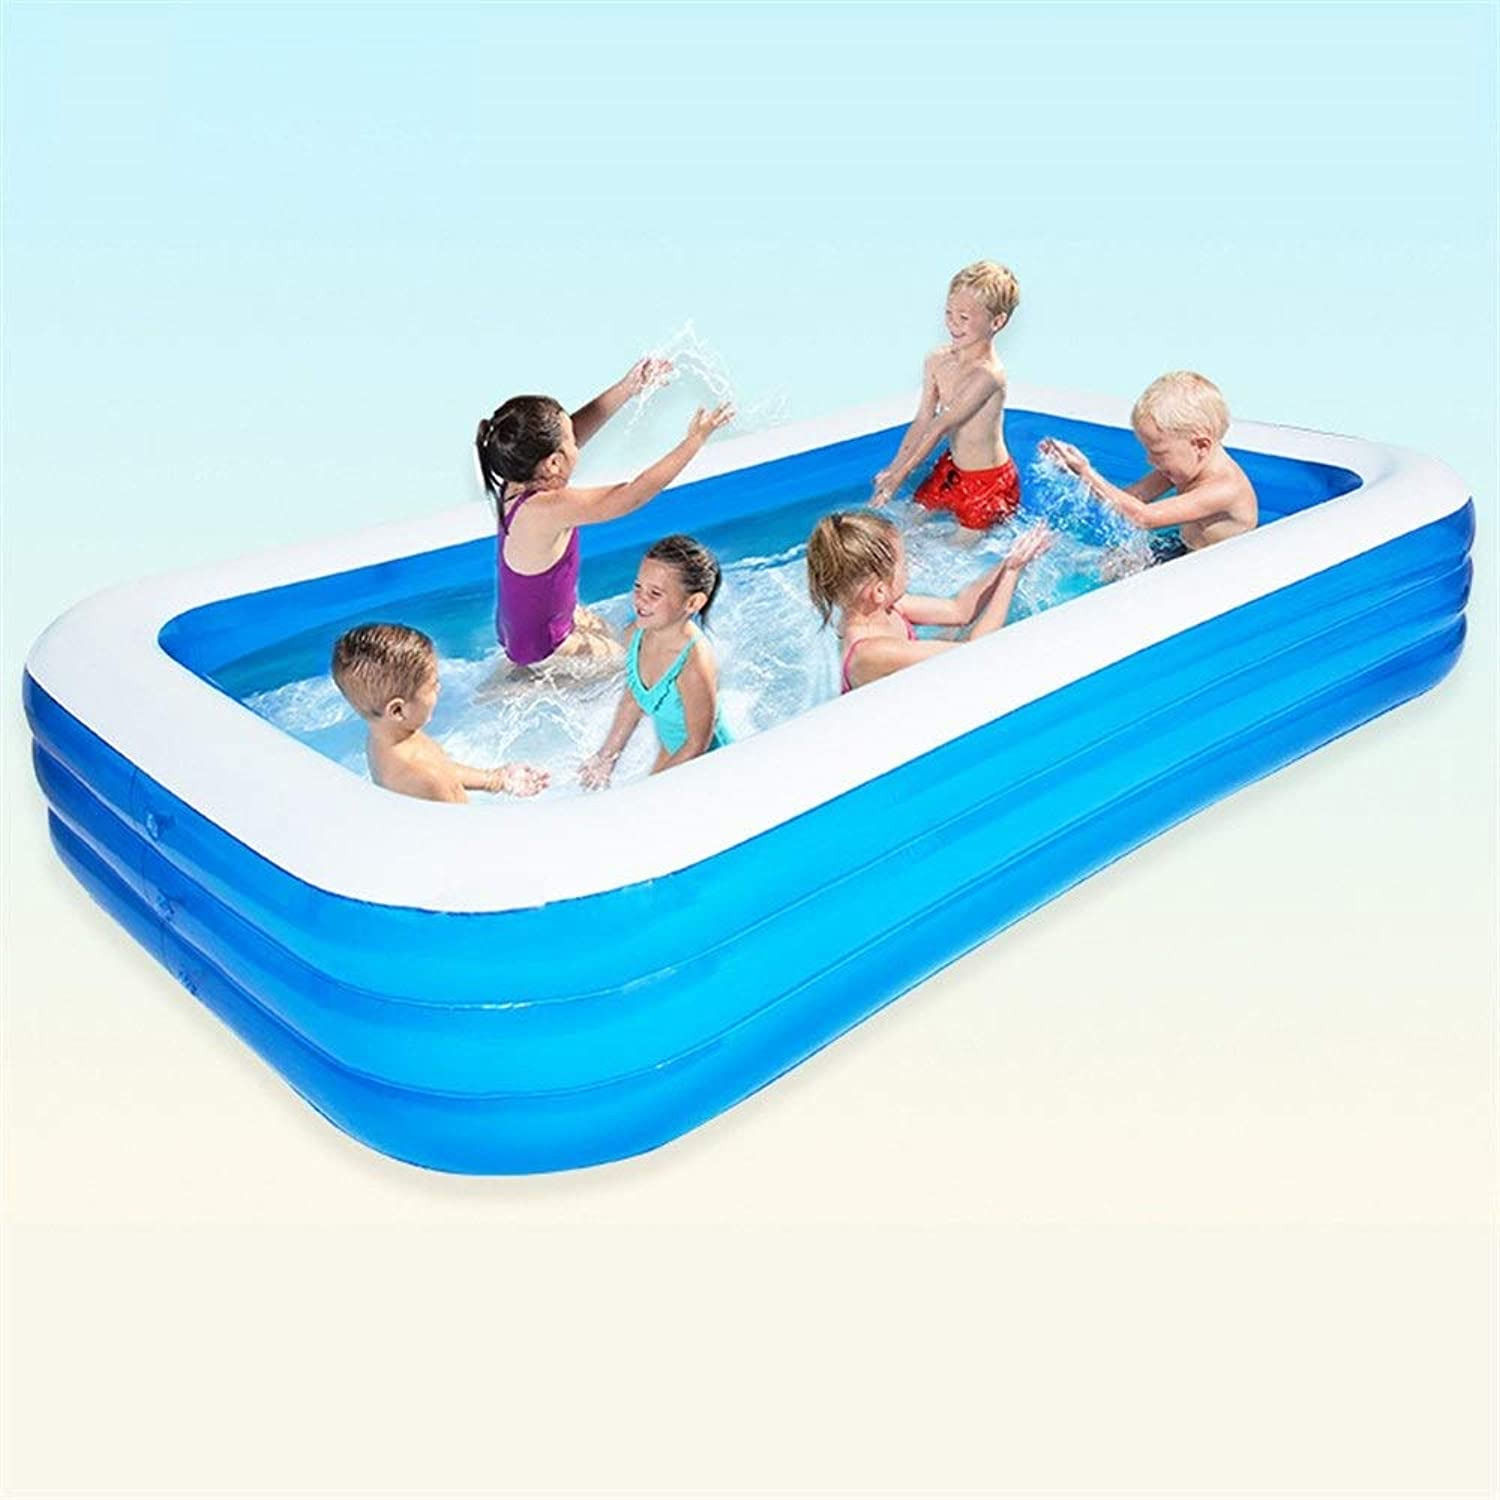 Inflatable Family Paddling Pool Large Family Fun Lounge Swimming Pool For Kids And Adults For Garden Parties bluee Multiple (Size   142.52  196.85  23.62in)